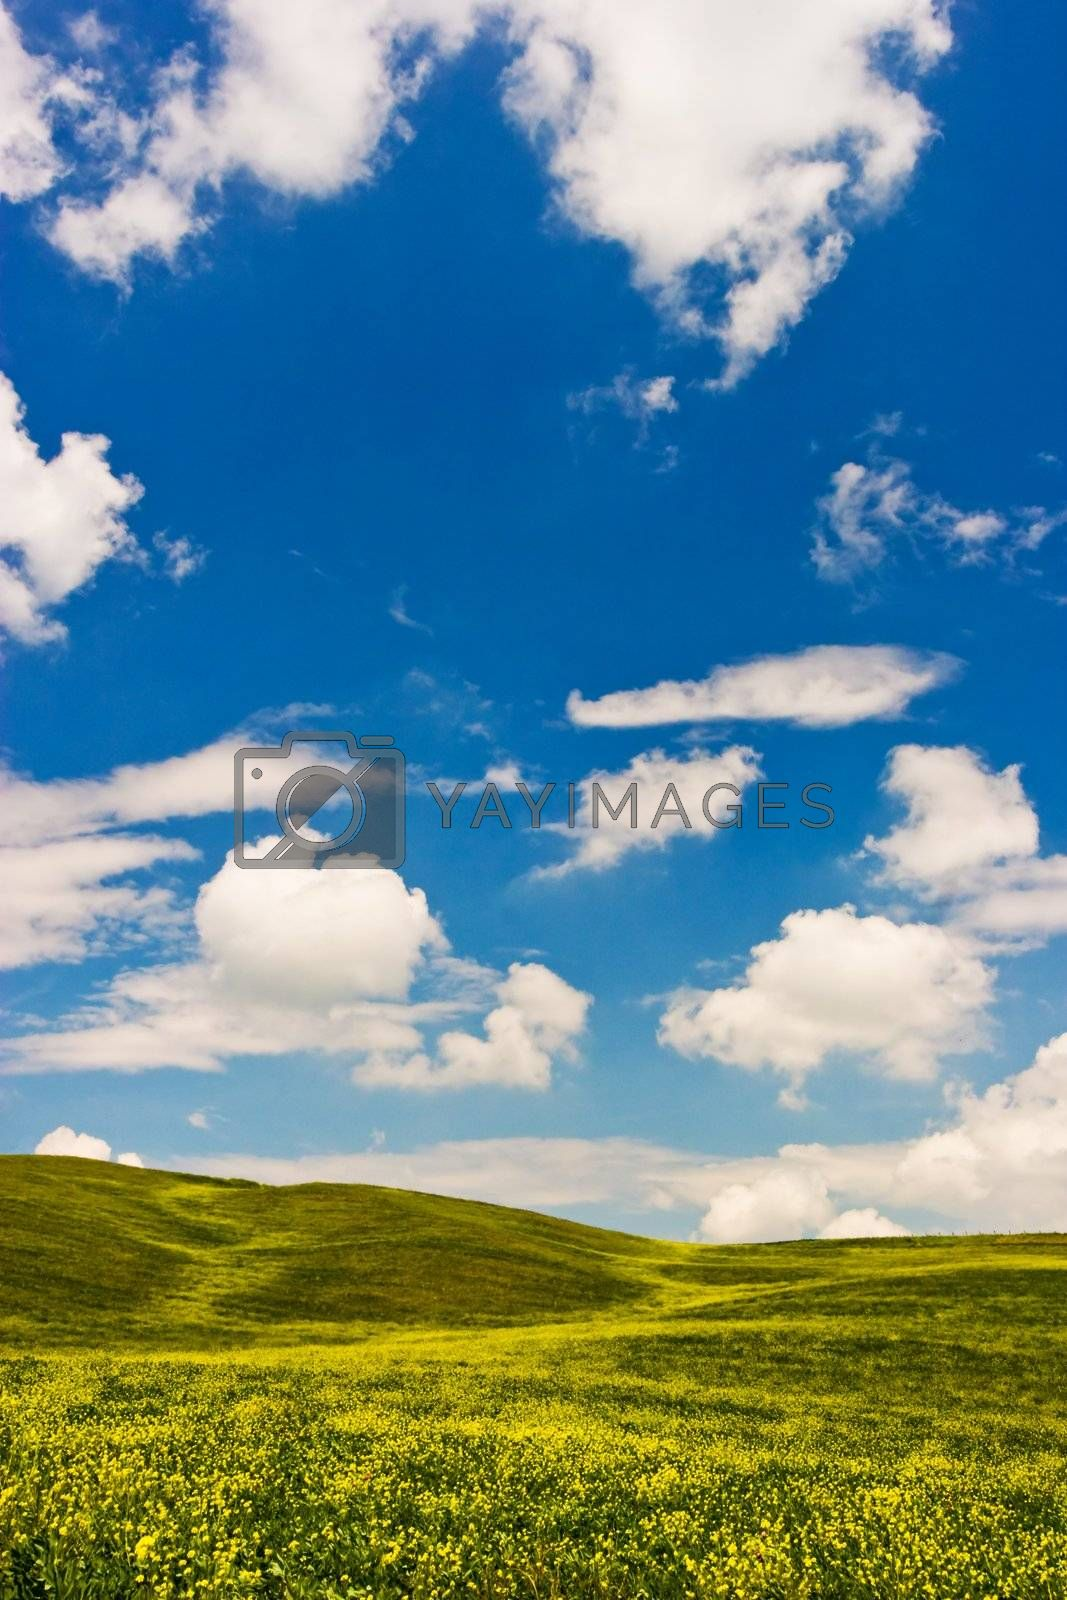 Landscape : Green field with yellow flowers, blue sky and big white fluffy clouds. Val D'Orcia - Tuscany, Italy